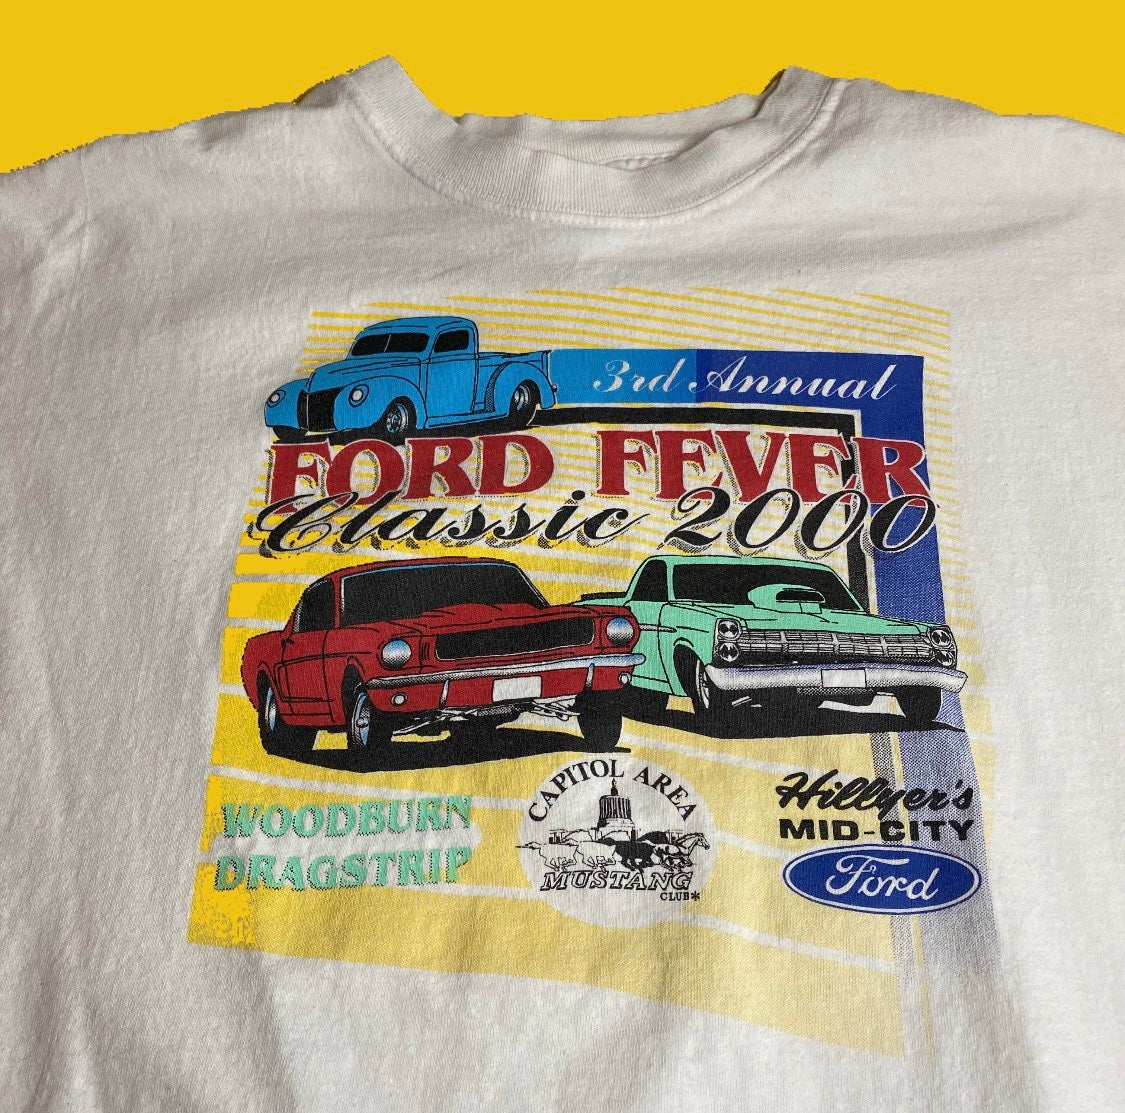 2000 Ford Fever Car Show Tee